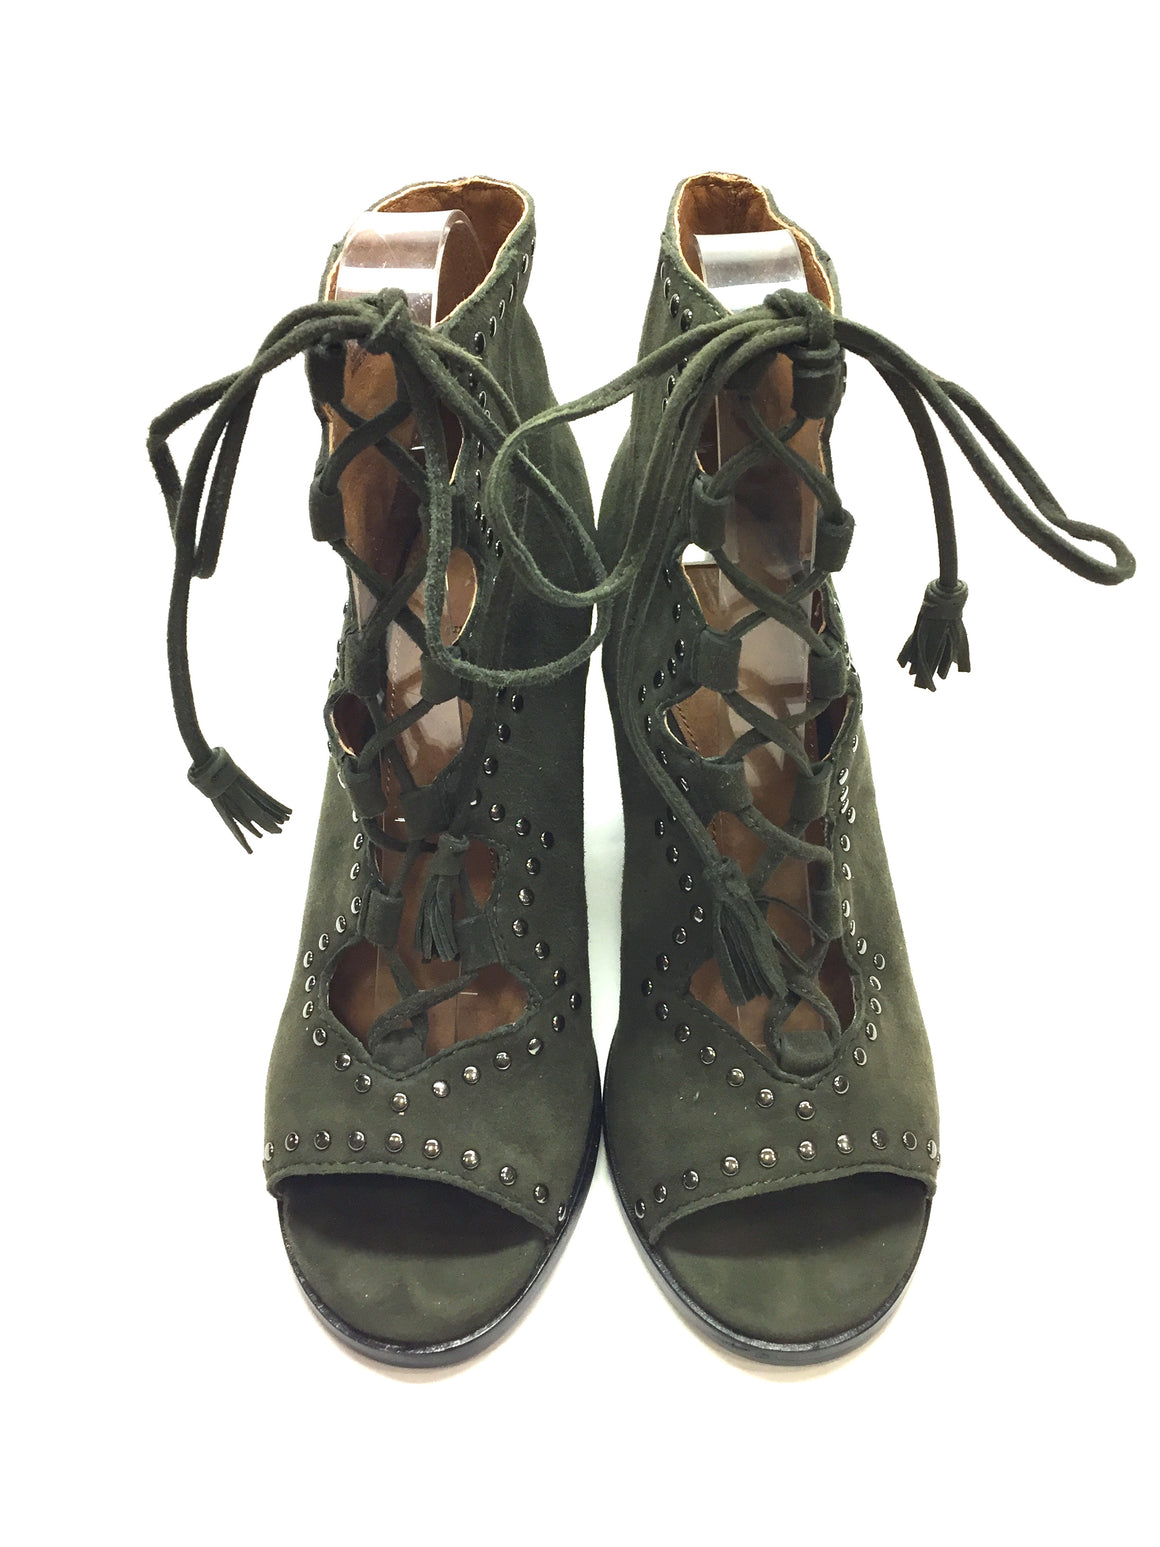 FRYE Loden-Green Suede  Open-Toe Lce-Up Ankle Boots Booties Sz 5.5M